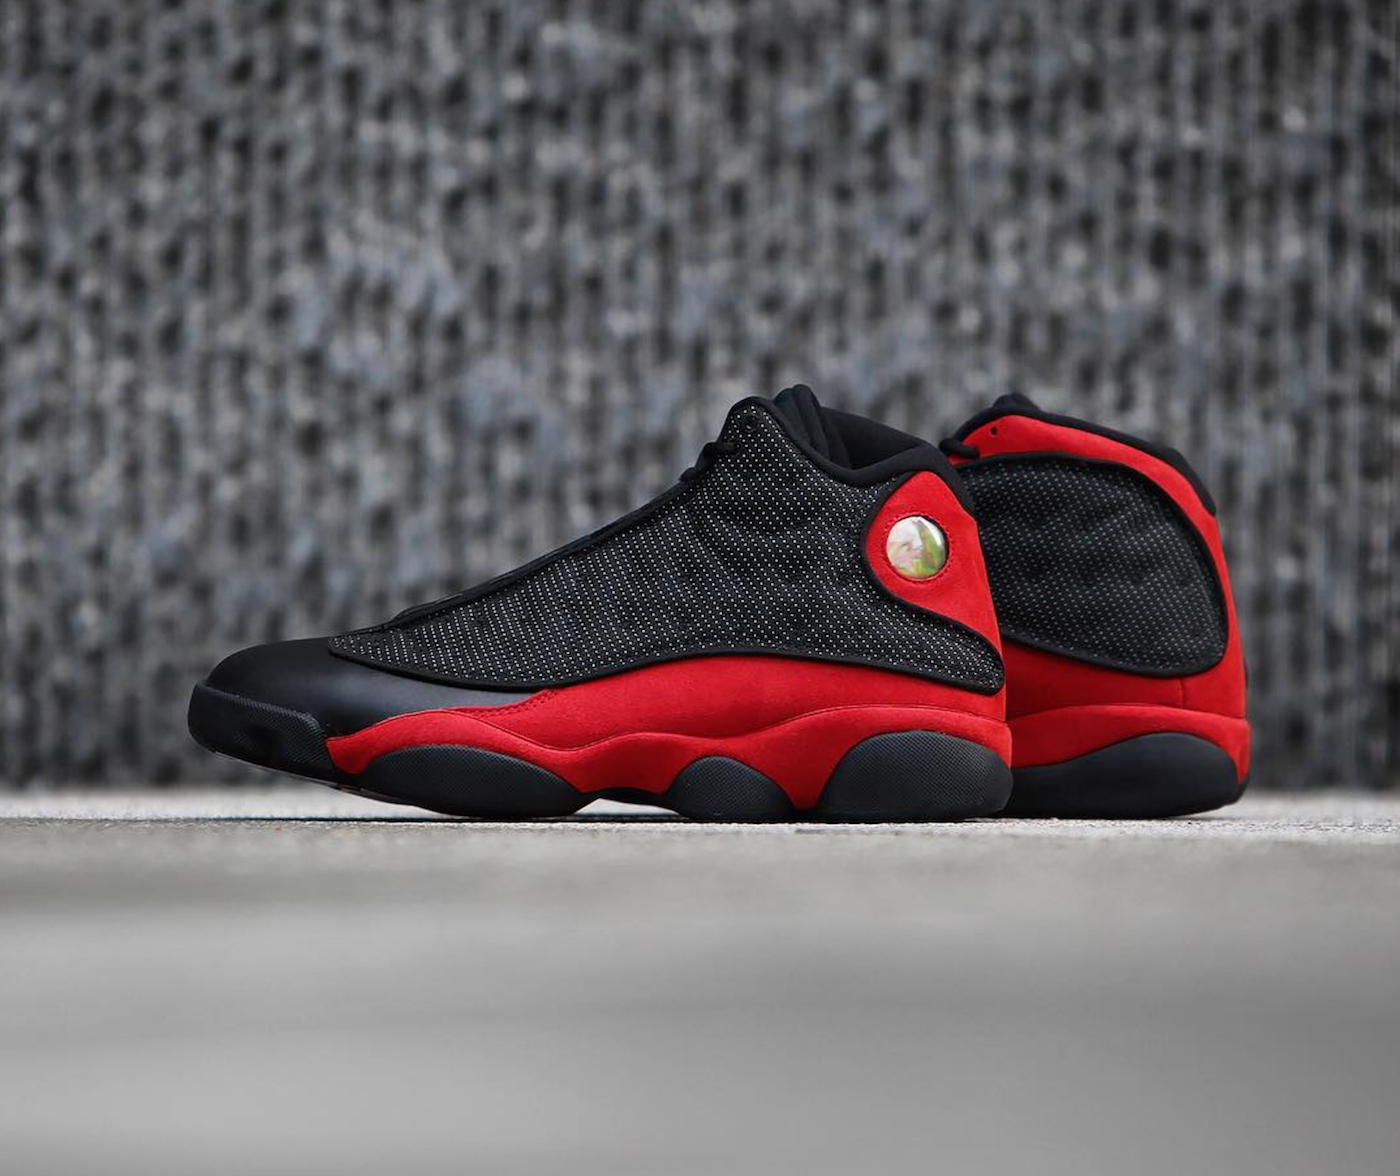 huge discount 5b30e 52841 air jordan retro 13 black red